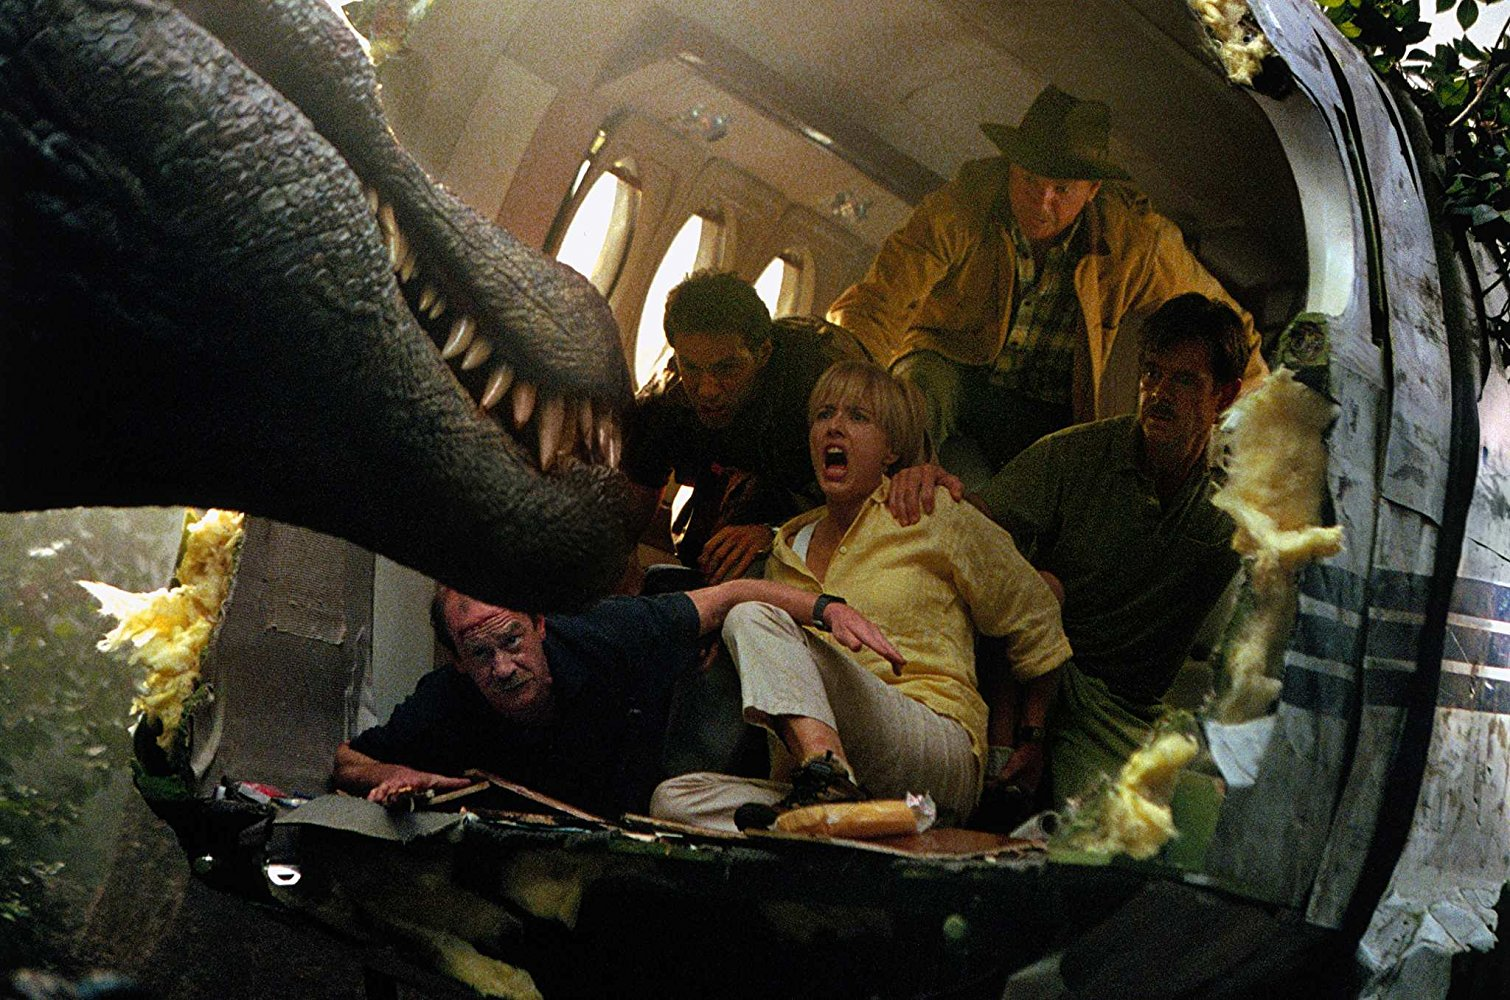 Michael Jeter, Alessandro Nivola, Téa Leoni, Sam Neill and William H. Macy in JURASSIC PARK III (2001)